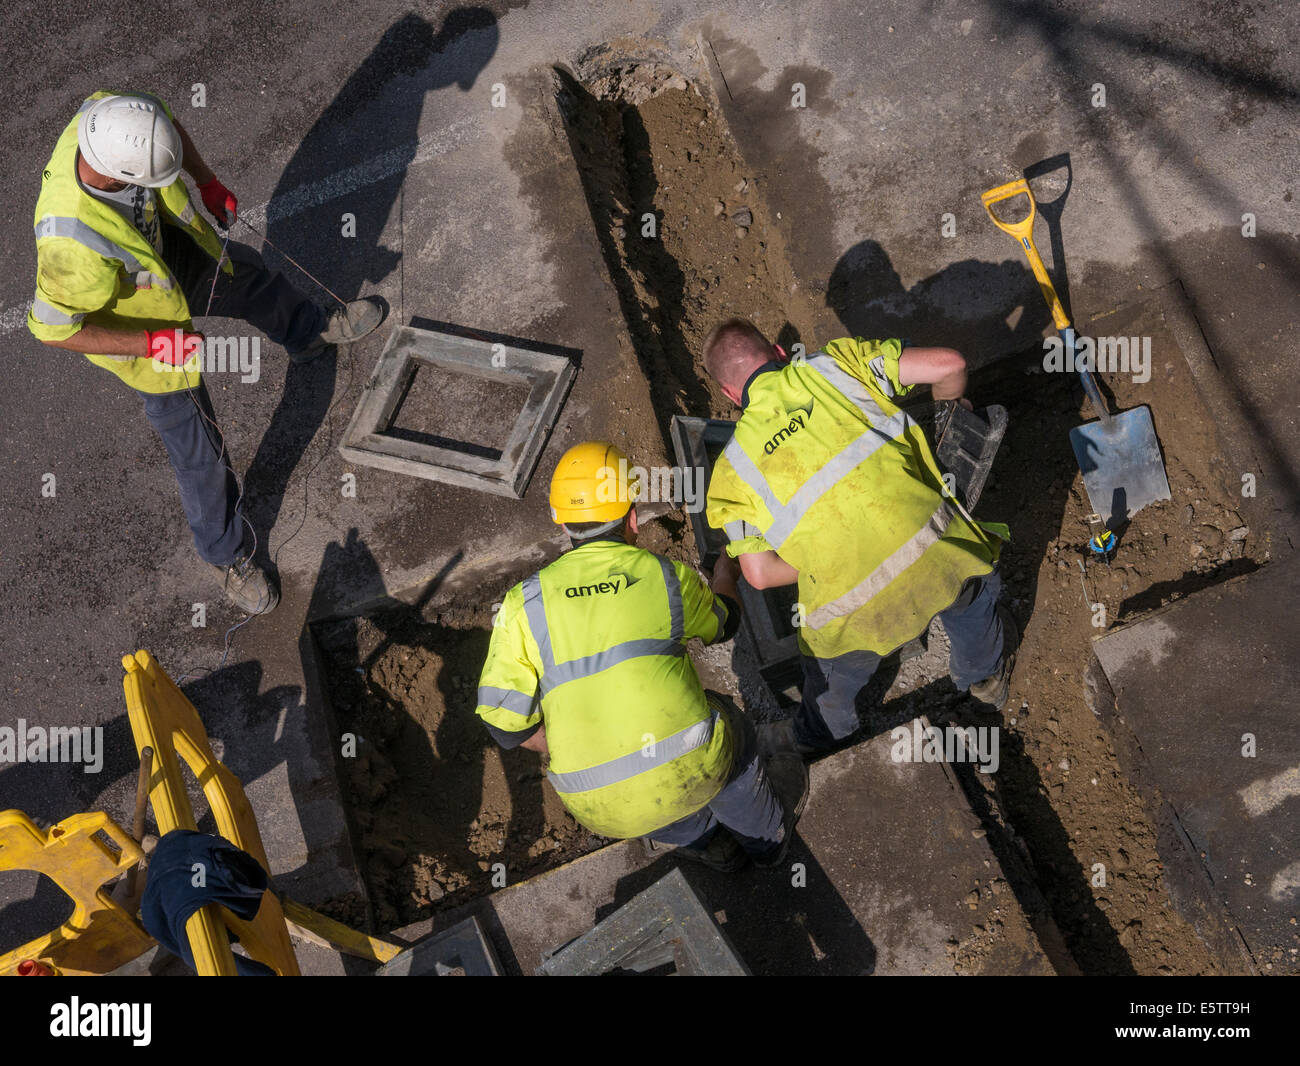 UK Roadworks Repair and replacement of underground water mains pipework by contractors - Amey mail@davidlevenson.com - Stock Image